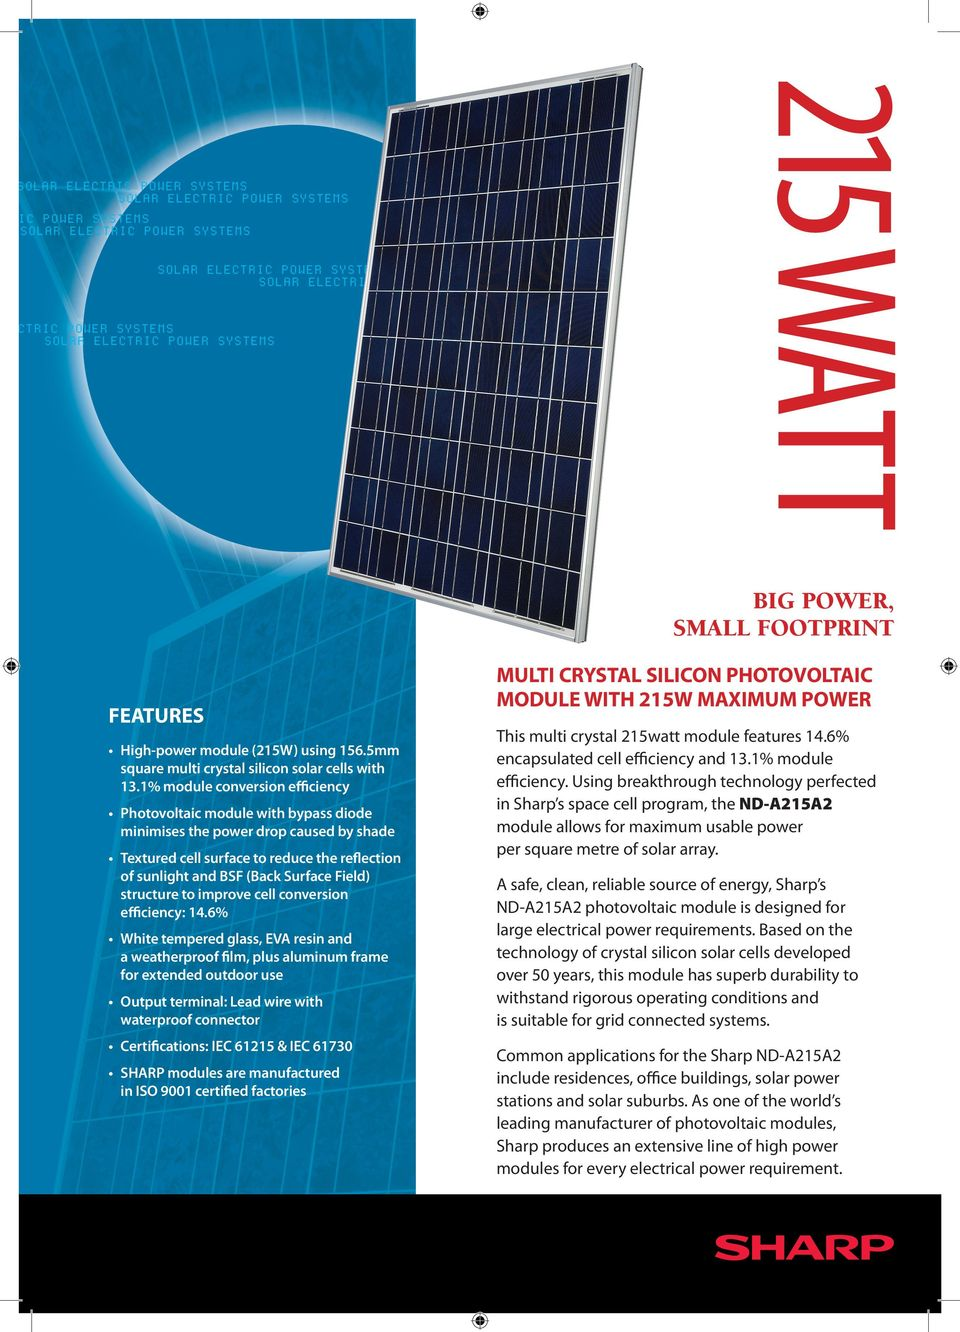 Your Sharp System Will Be Supplied With One Of The Following Sets Grid Solar Panel Bypass Schematic Structure To Improve Cell Conversion Efficiency 14